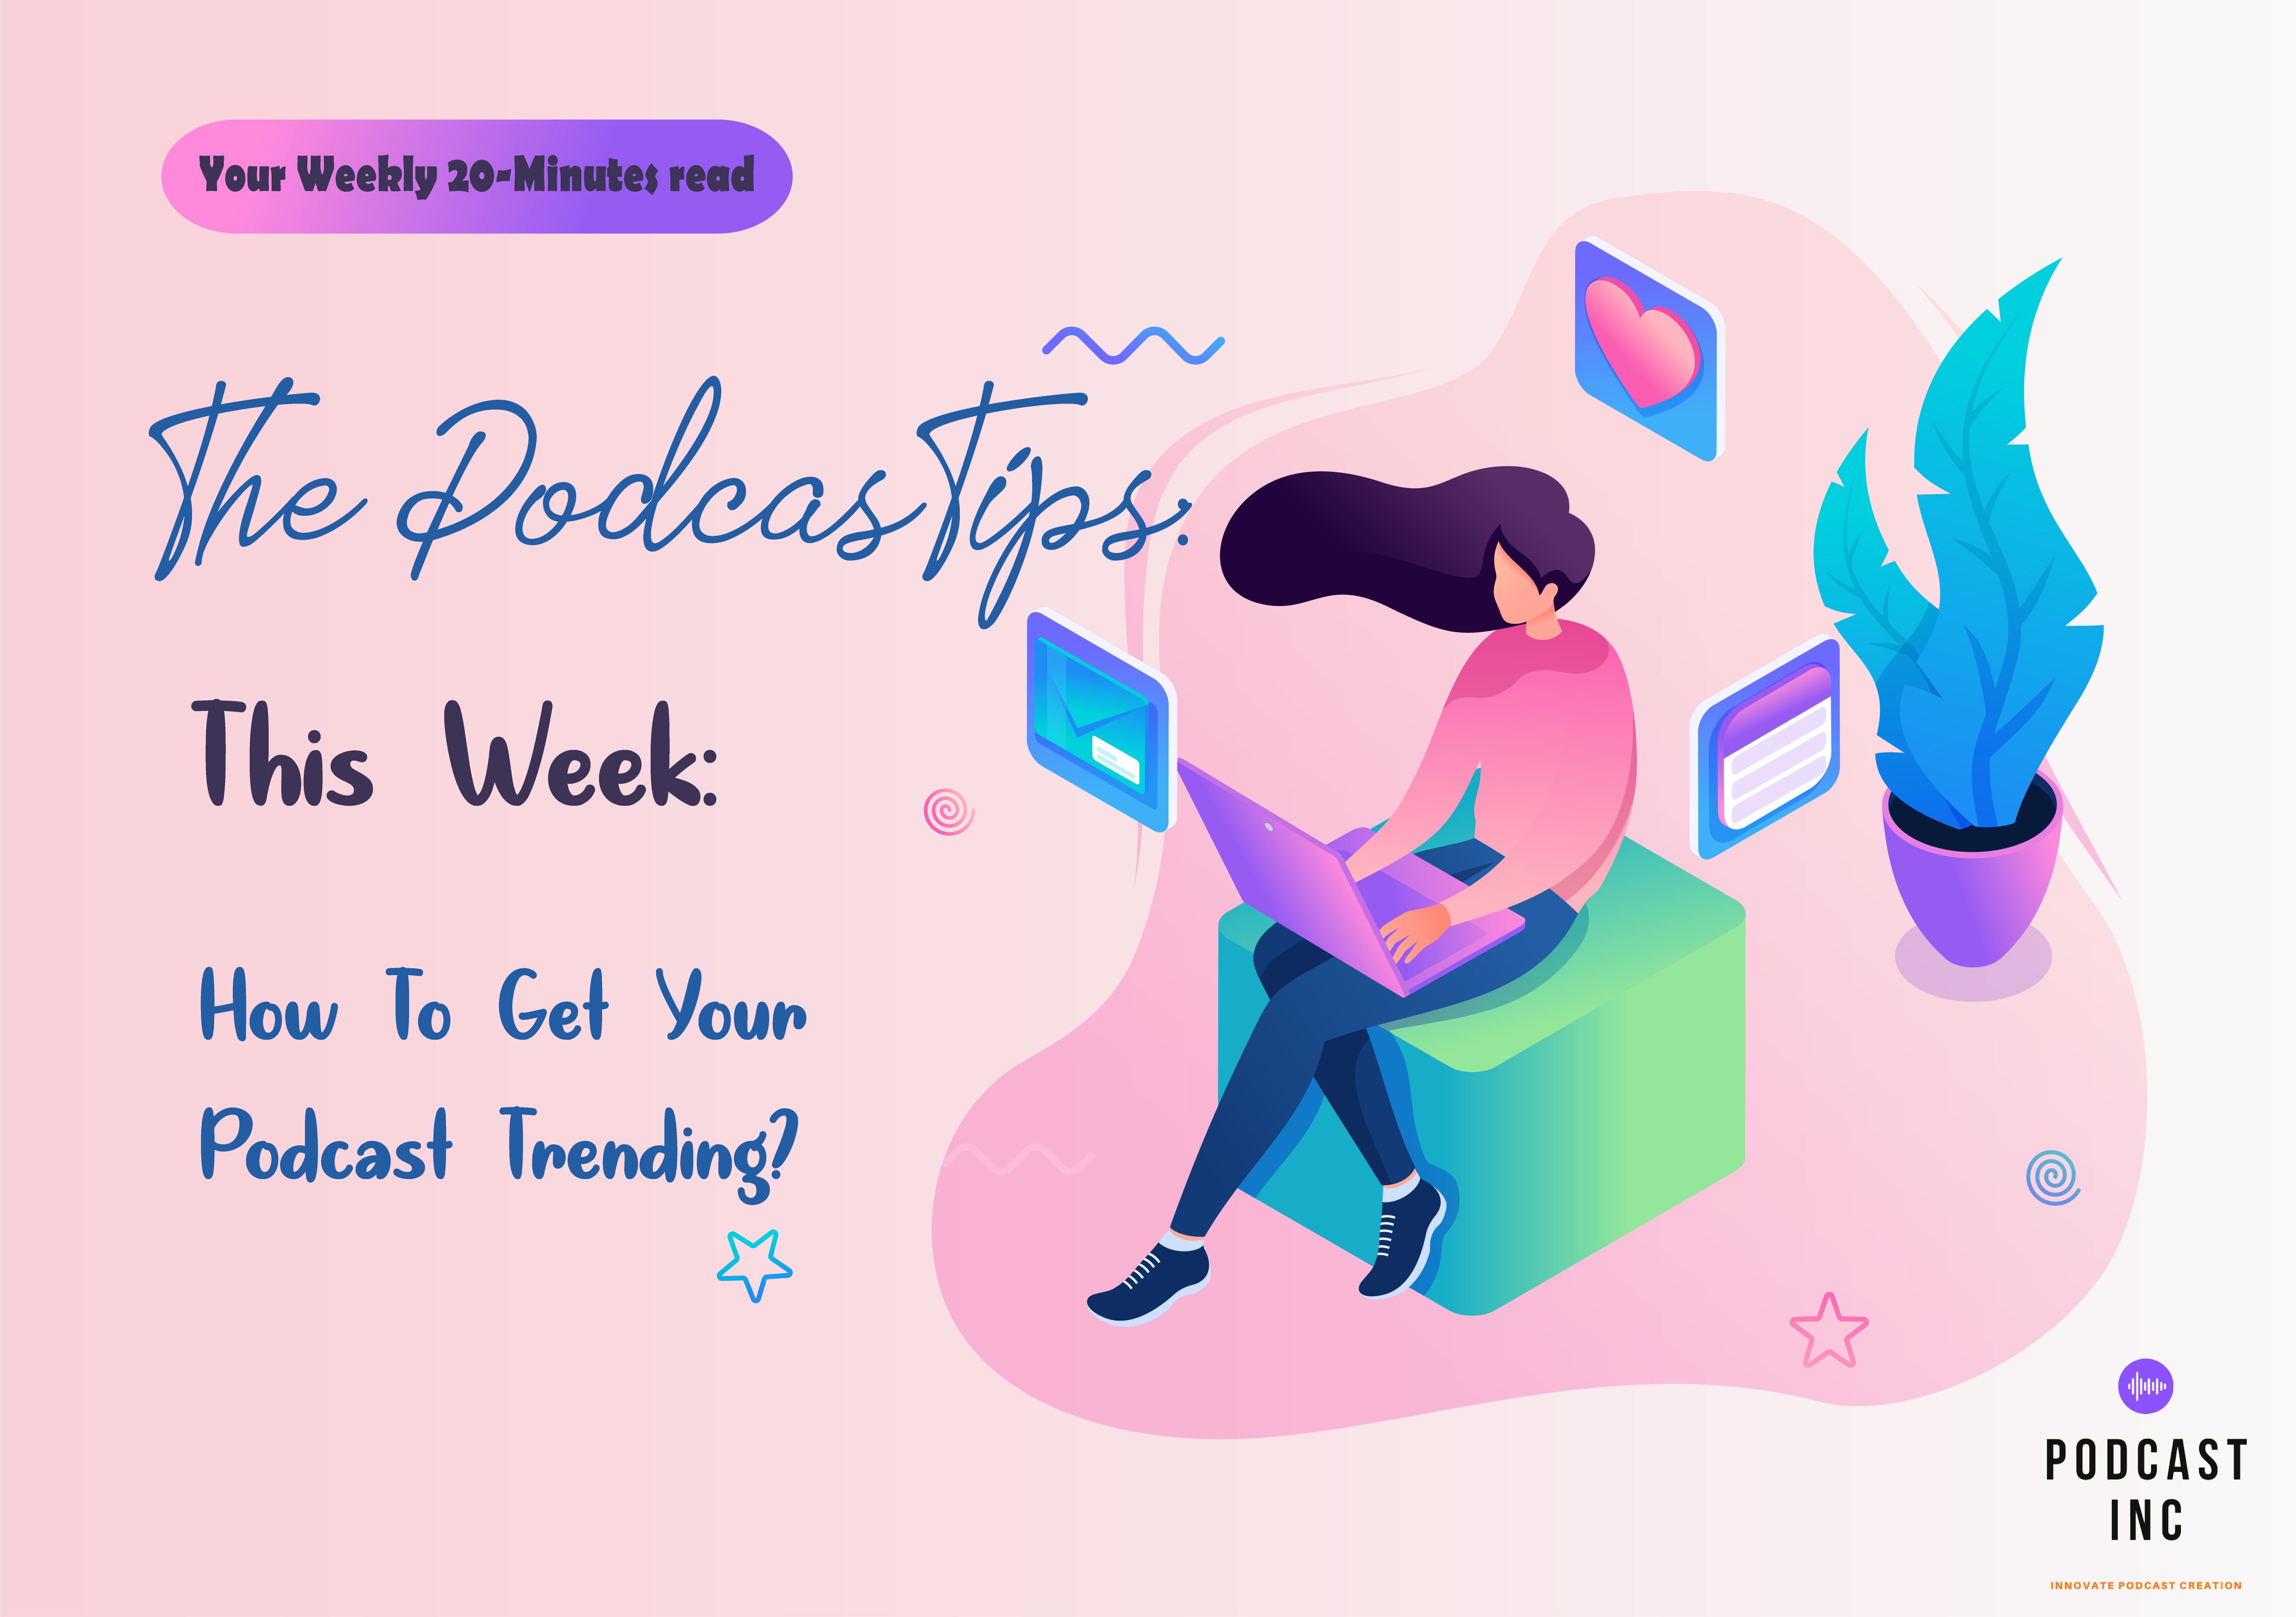 How To Get Your Podcast Trending